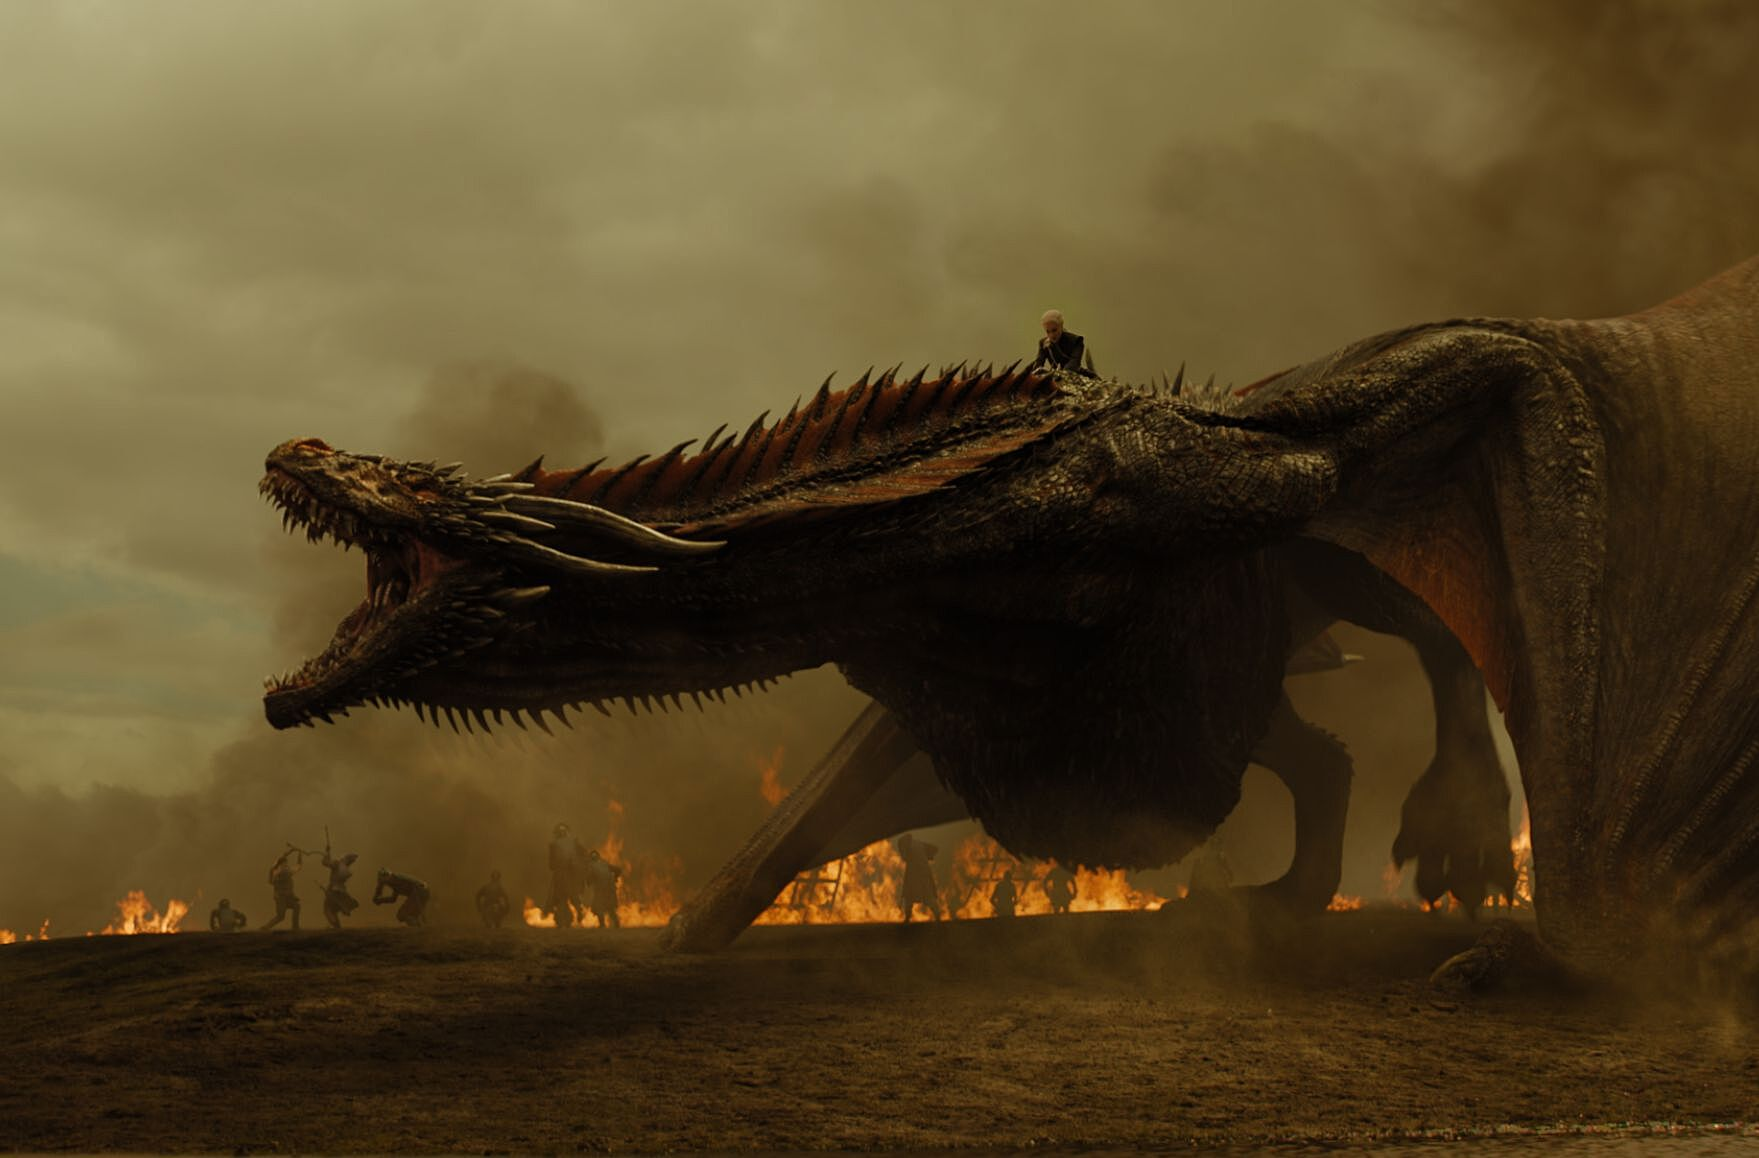 Power ranking the dragons of A Song of Ice and Fire